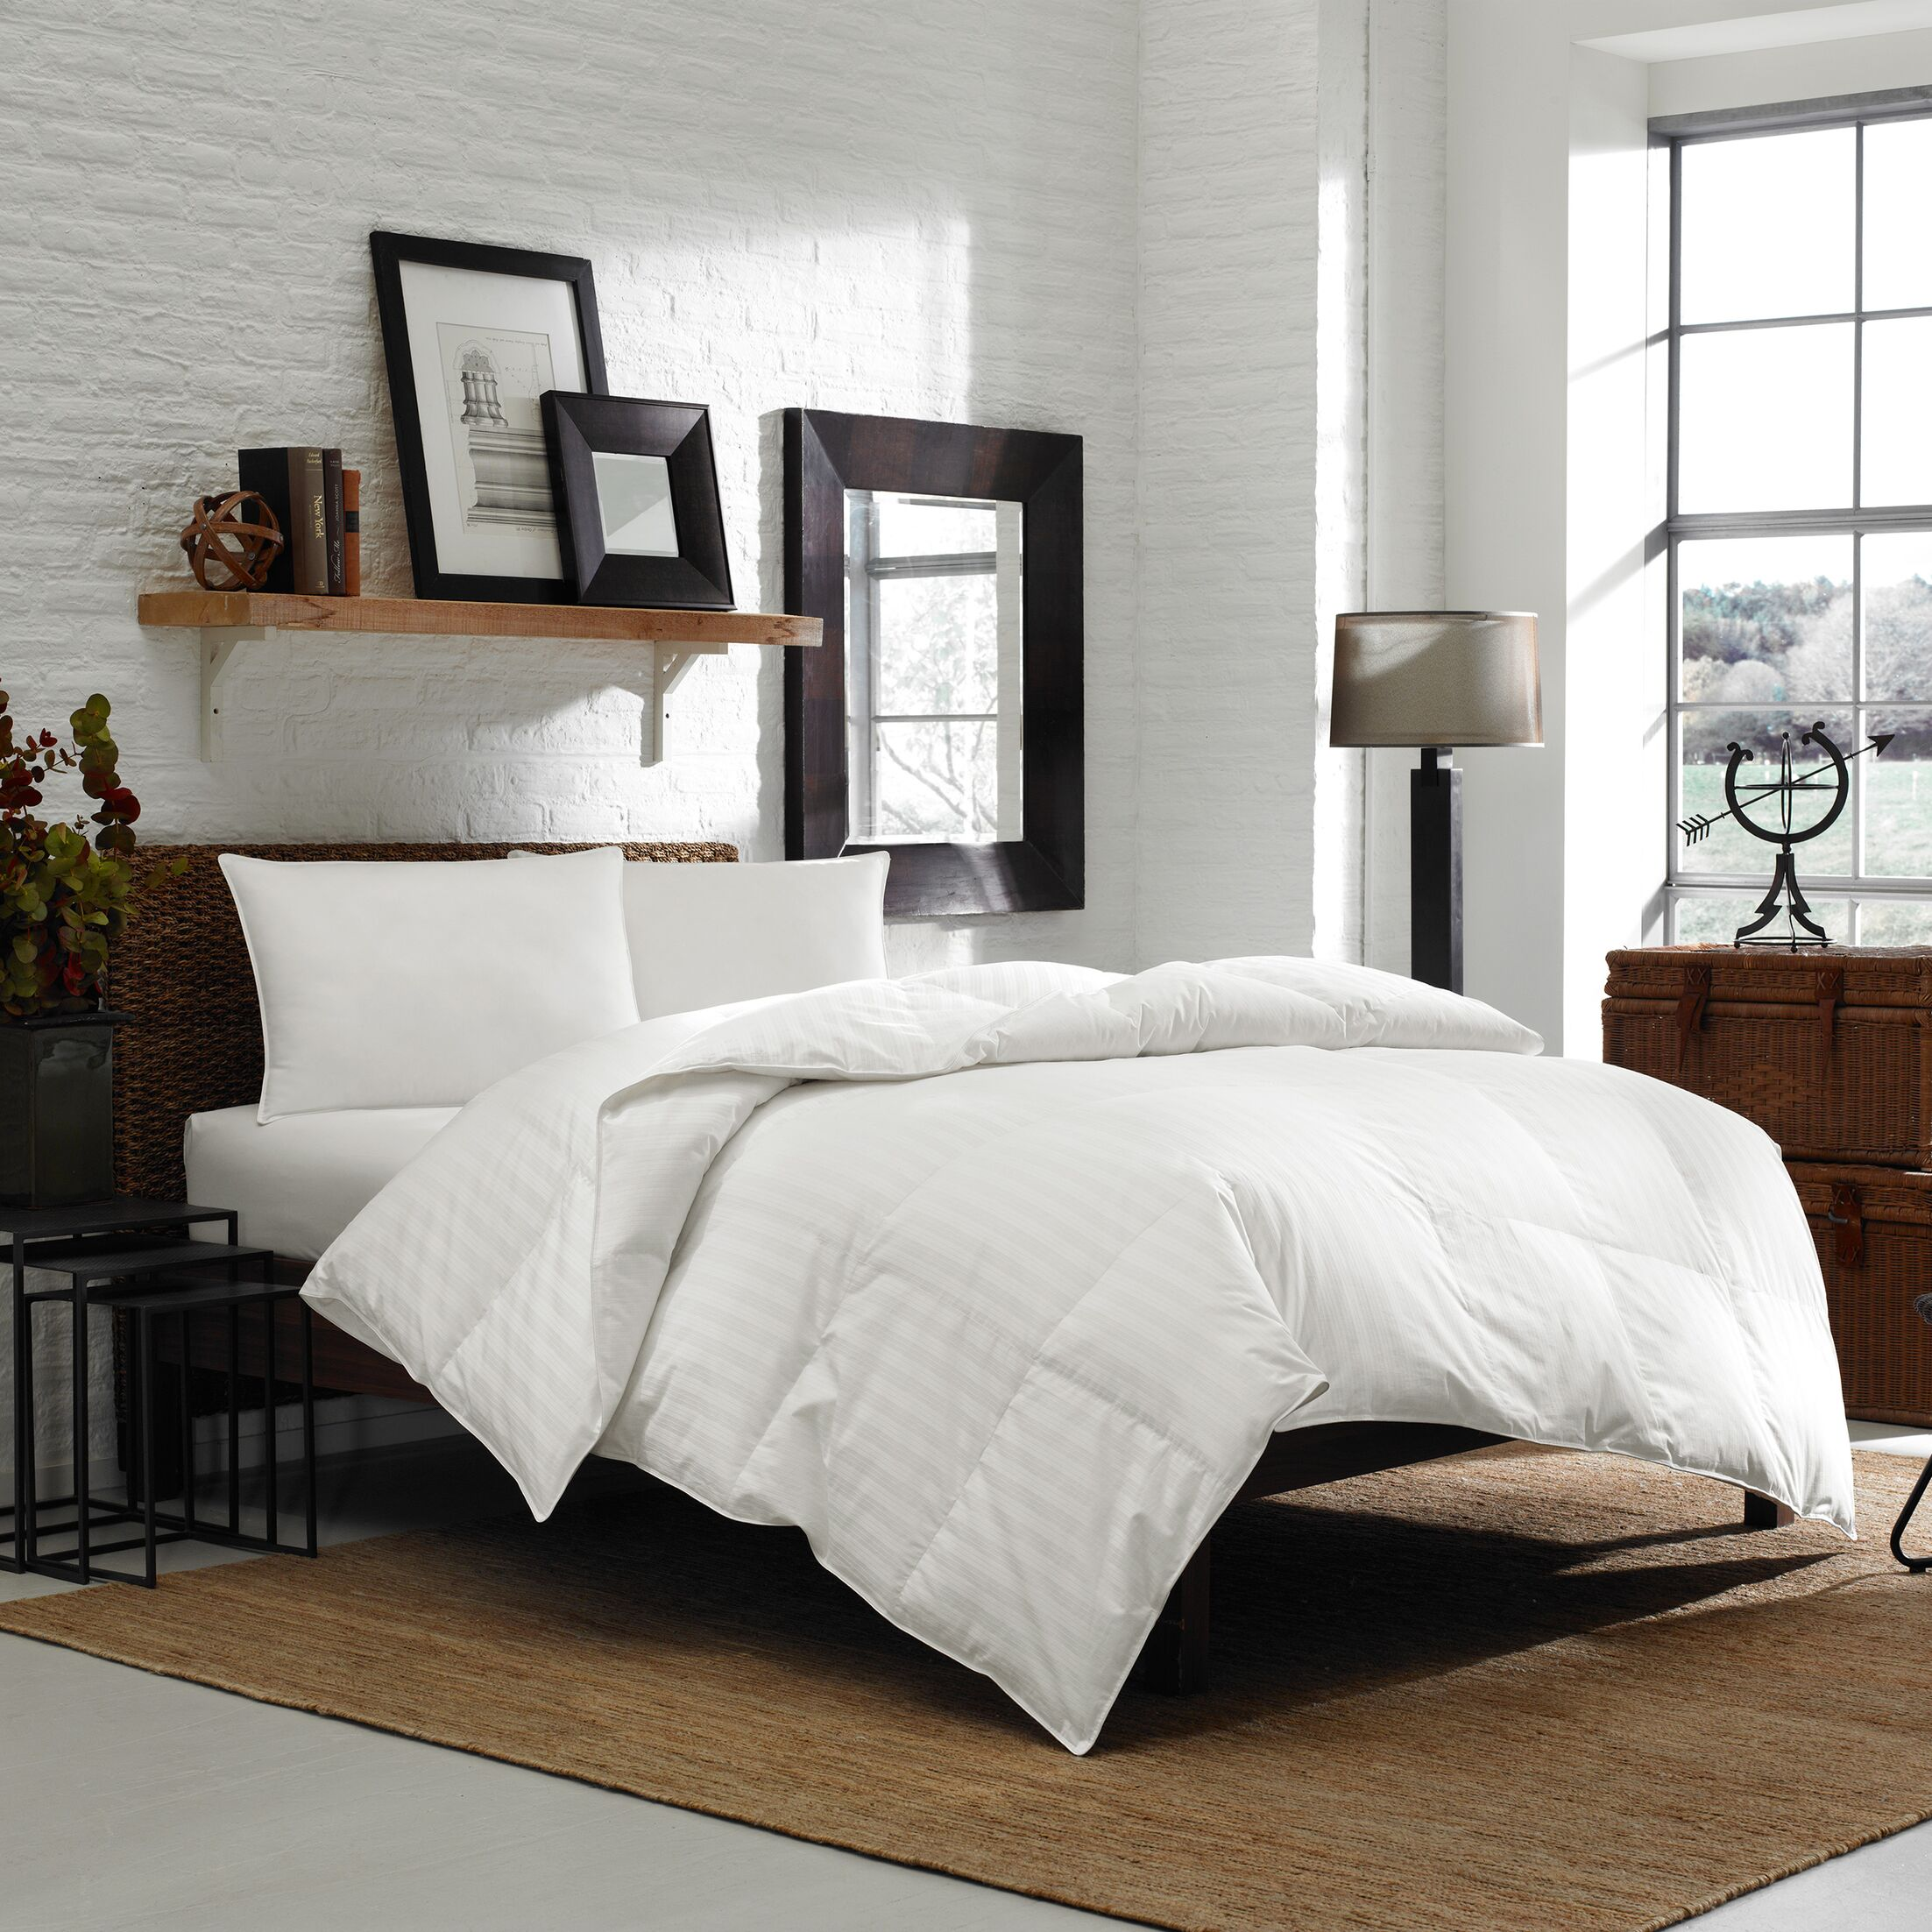 300 Thread Count Damask 650 FP Midweight Down Comforter Size: Queen